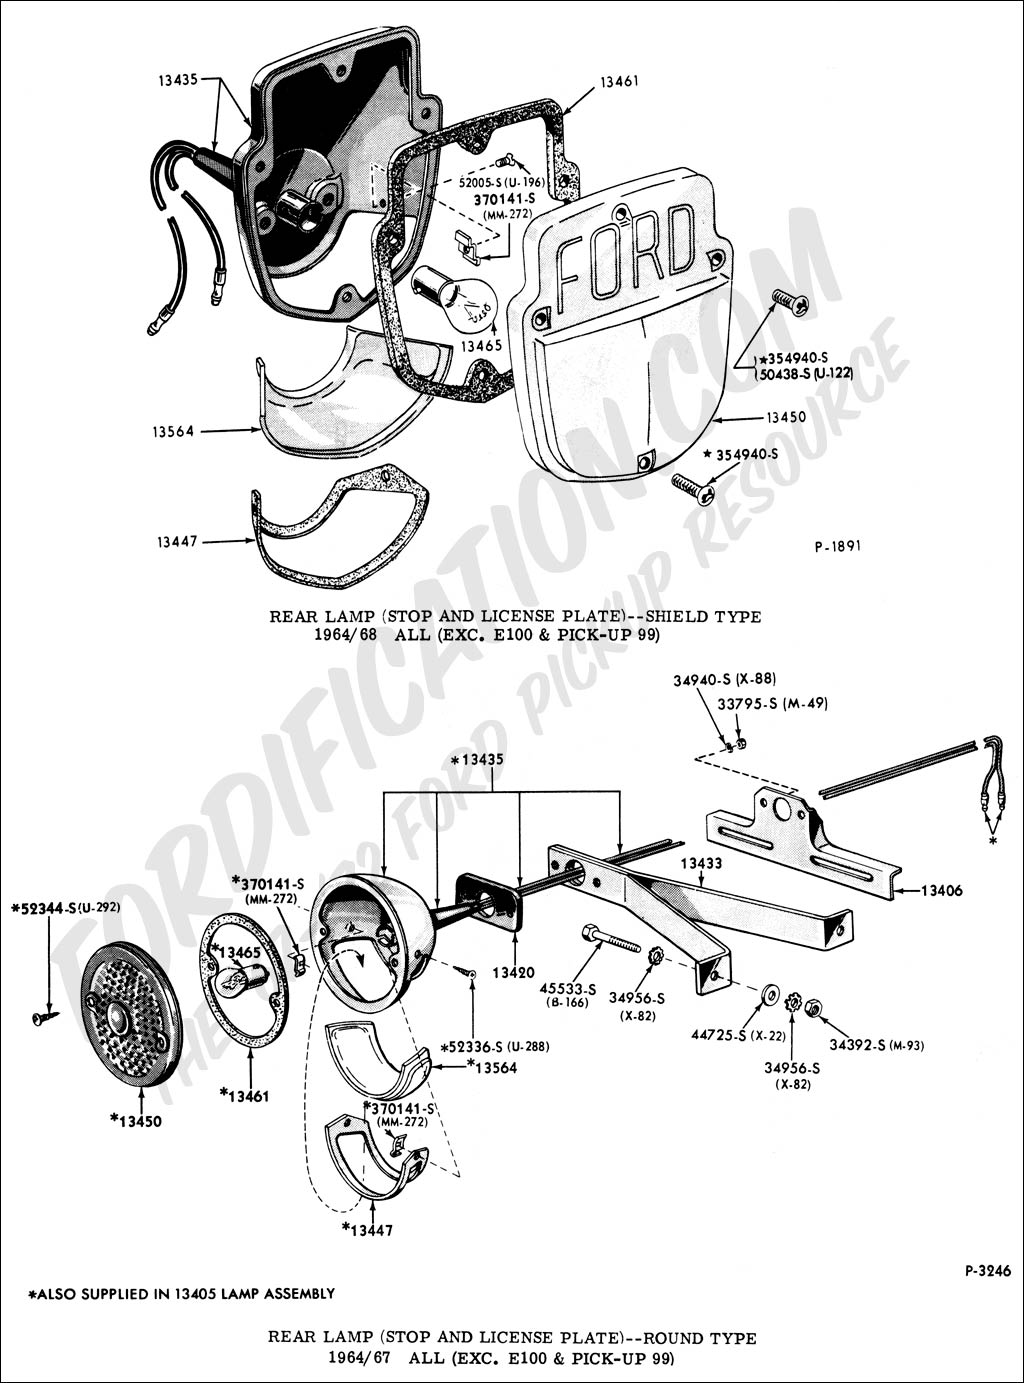 6aqoe Gm Deville Schematic Vacumn Hoses furthermore 1968 Ford Mustang Exterior Light Wiring Diagram additionally 94 Camaro Starter Location likewise 93 Mustang Turn Signal Wiring further 73 Chevy C10 Distributor To Ignition Switch Wiring Diagram. on 68 mustang wiring diagram master